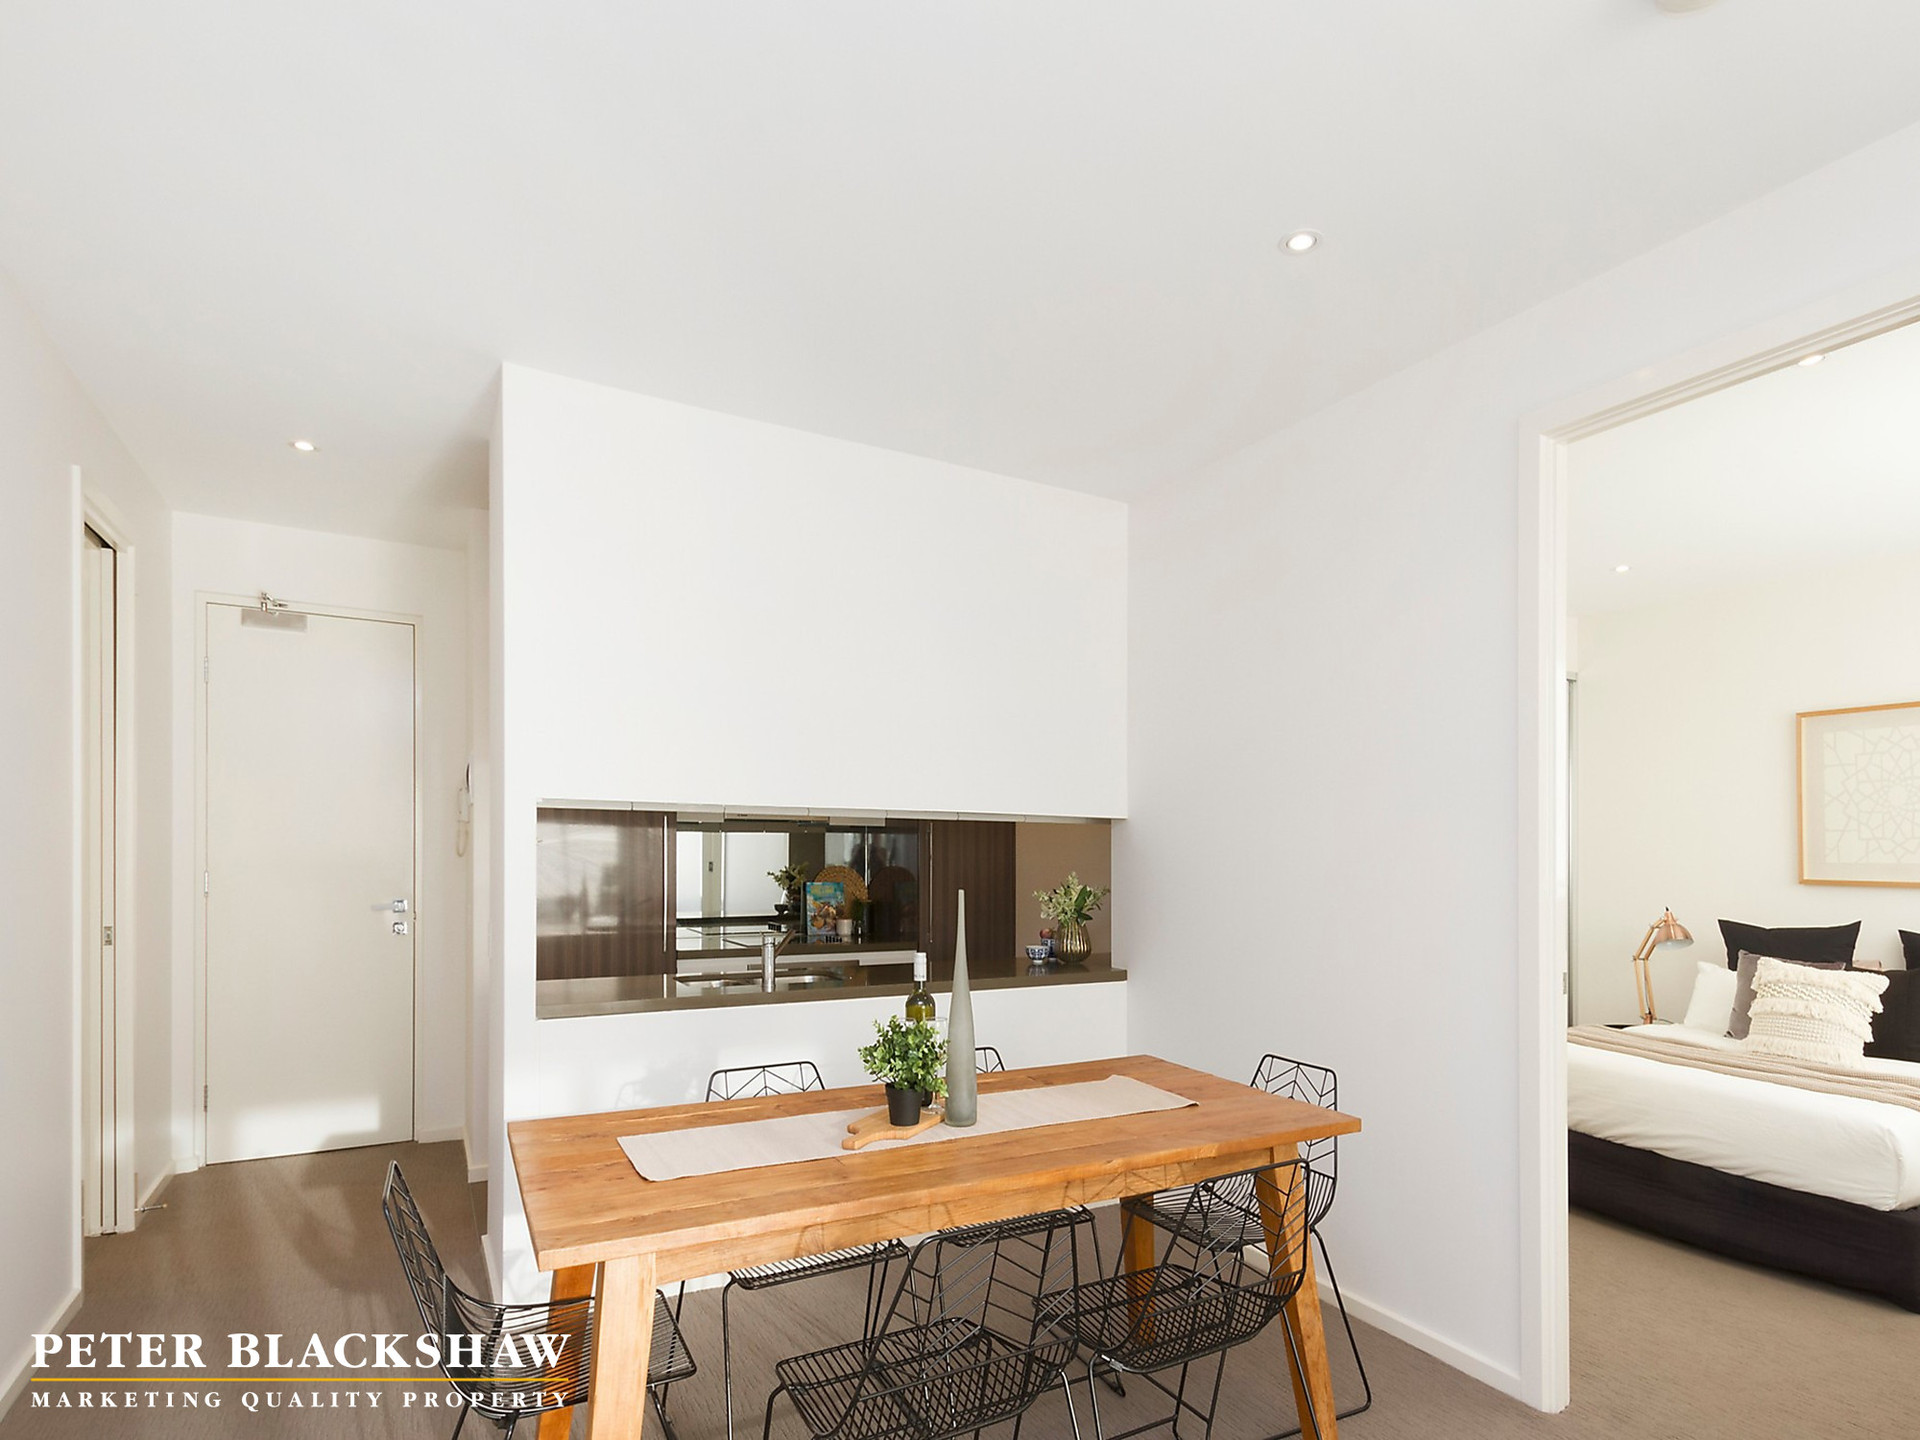 5314 New South Wales Crescent, Forrest Act 2603  Apartment